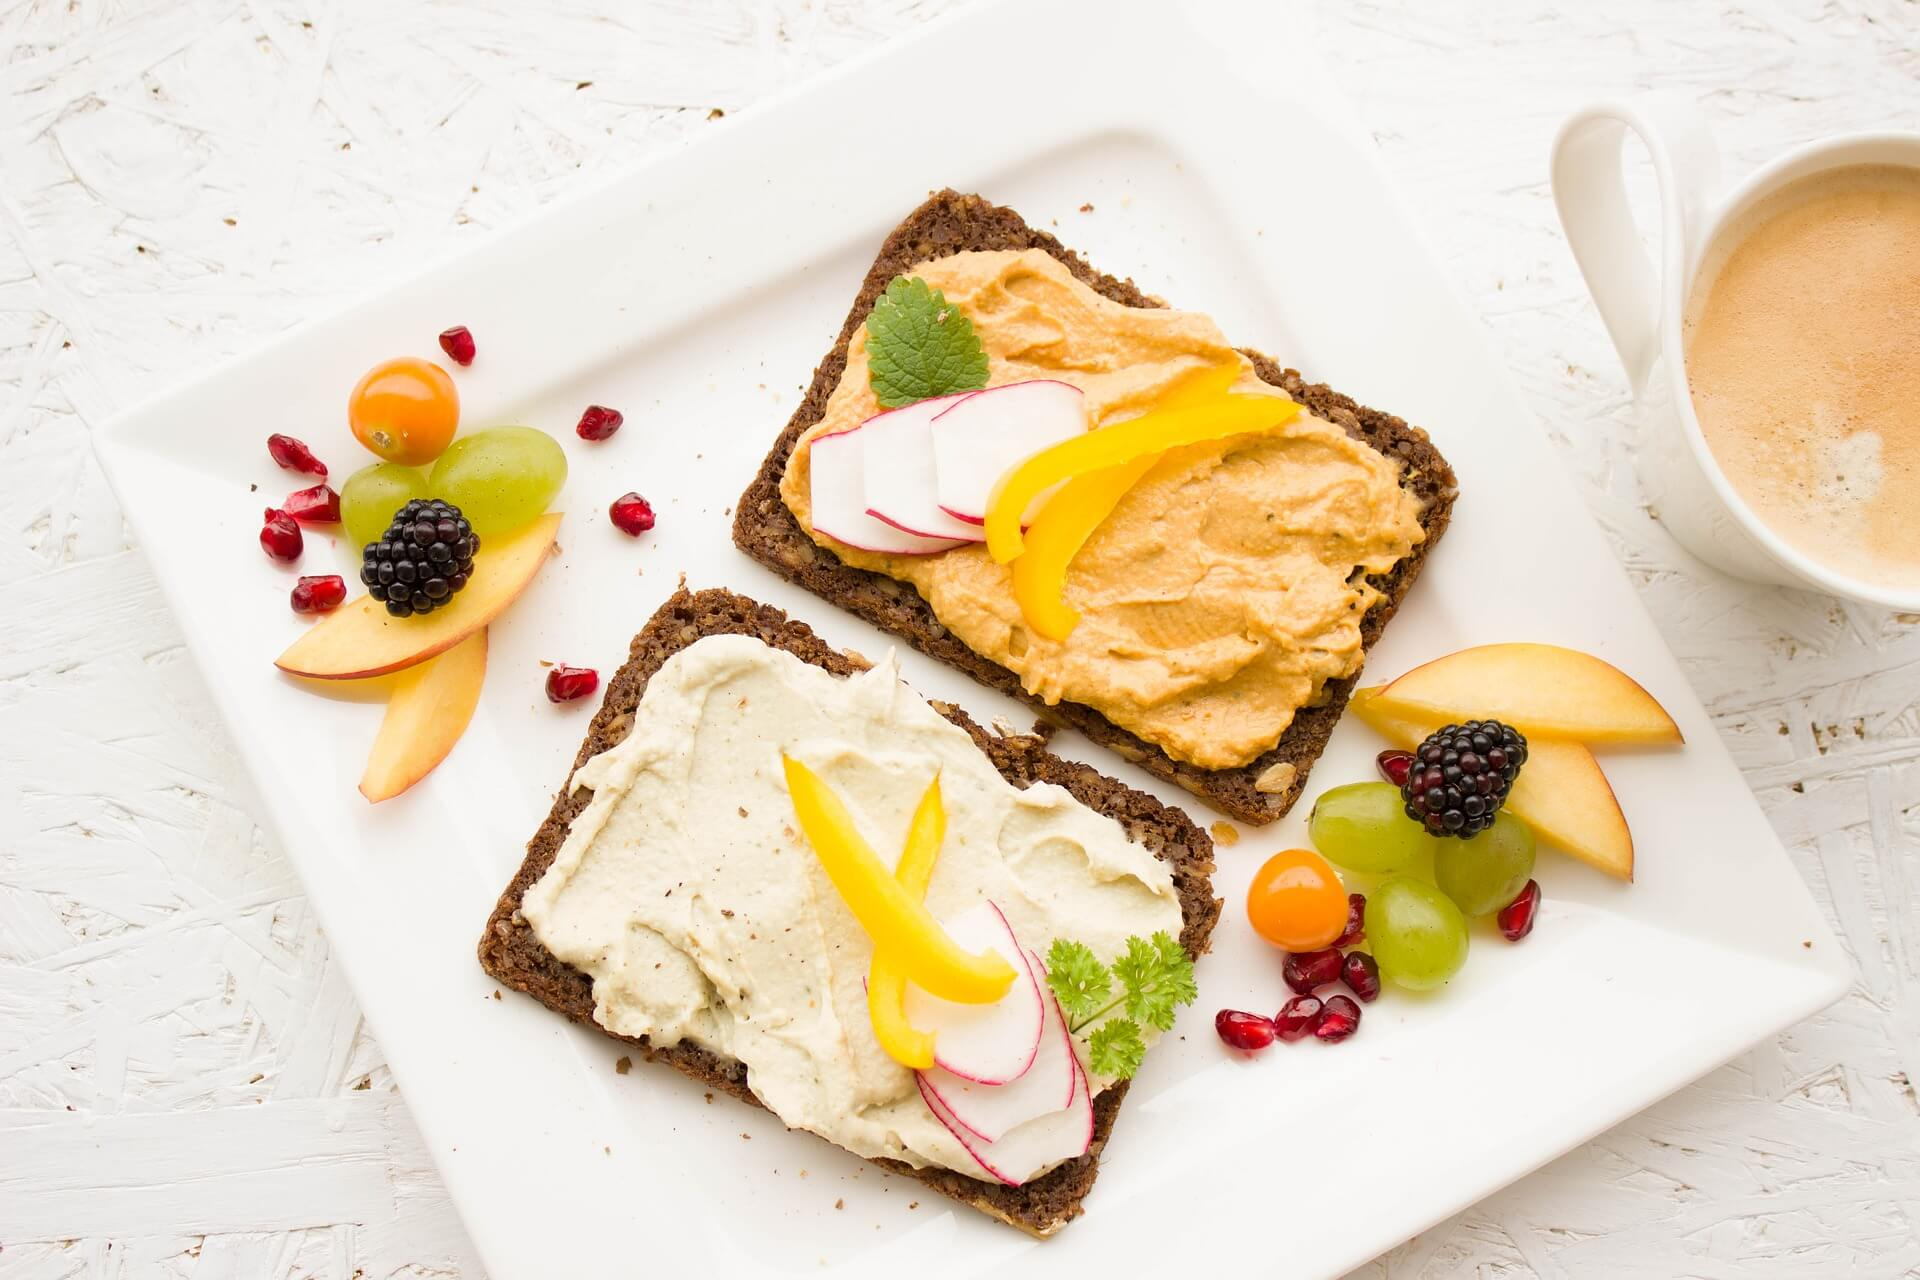 vegan toast with hummus and spreads